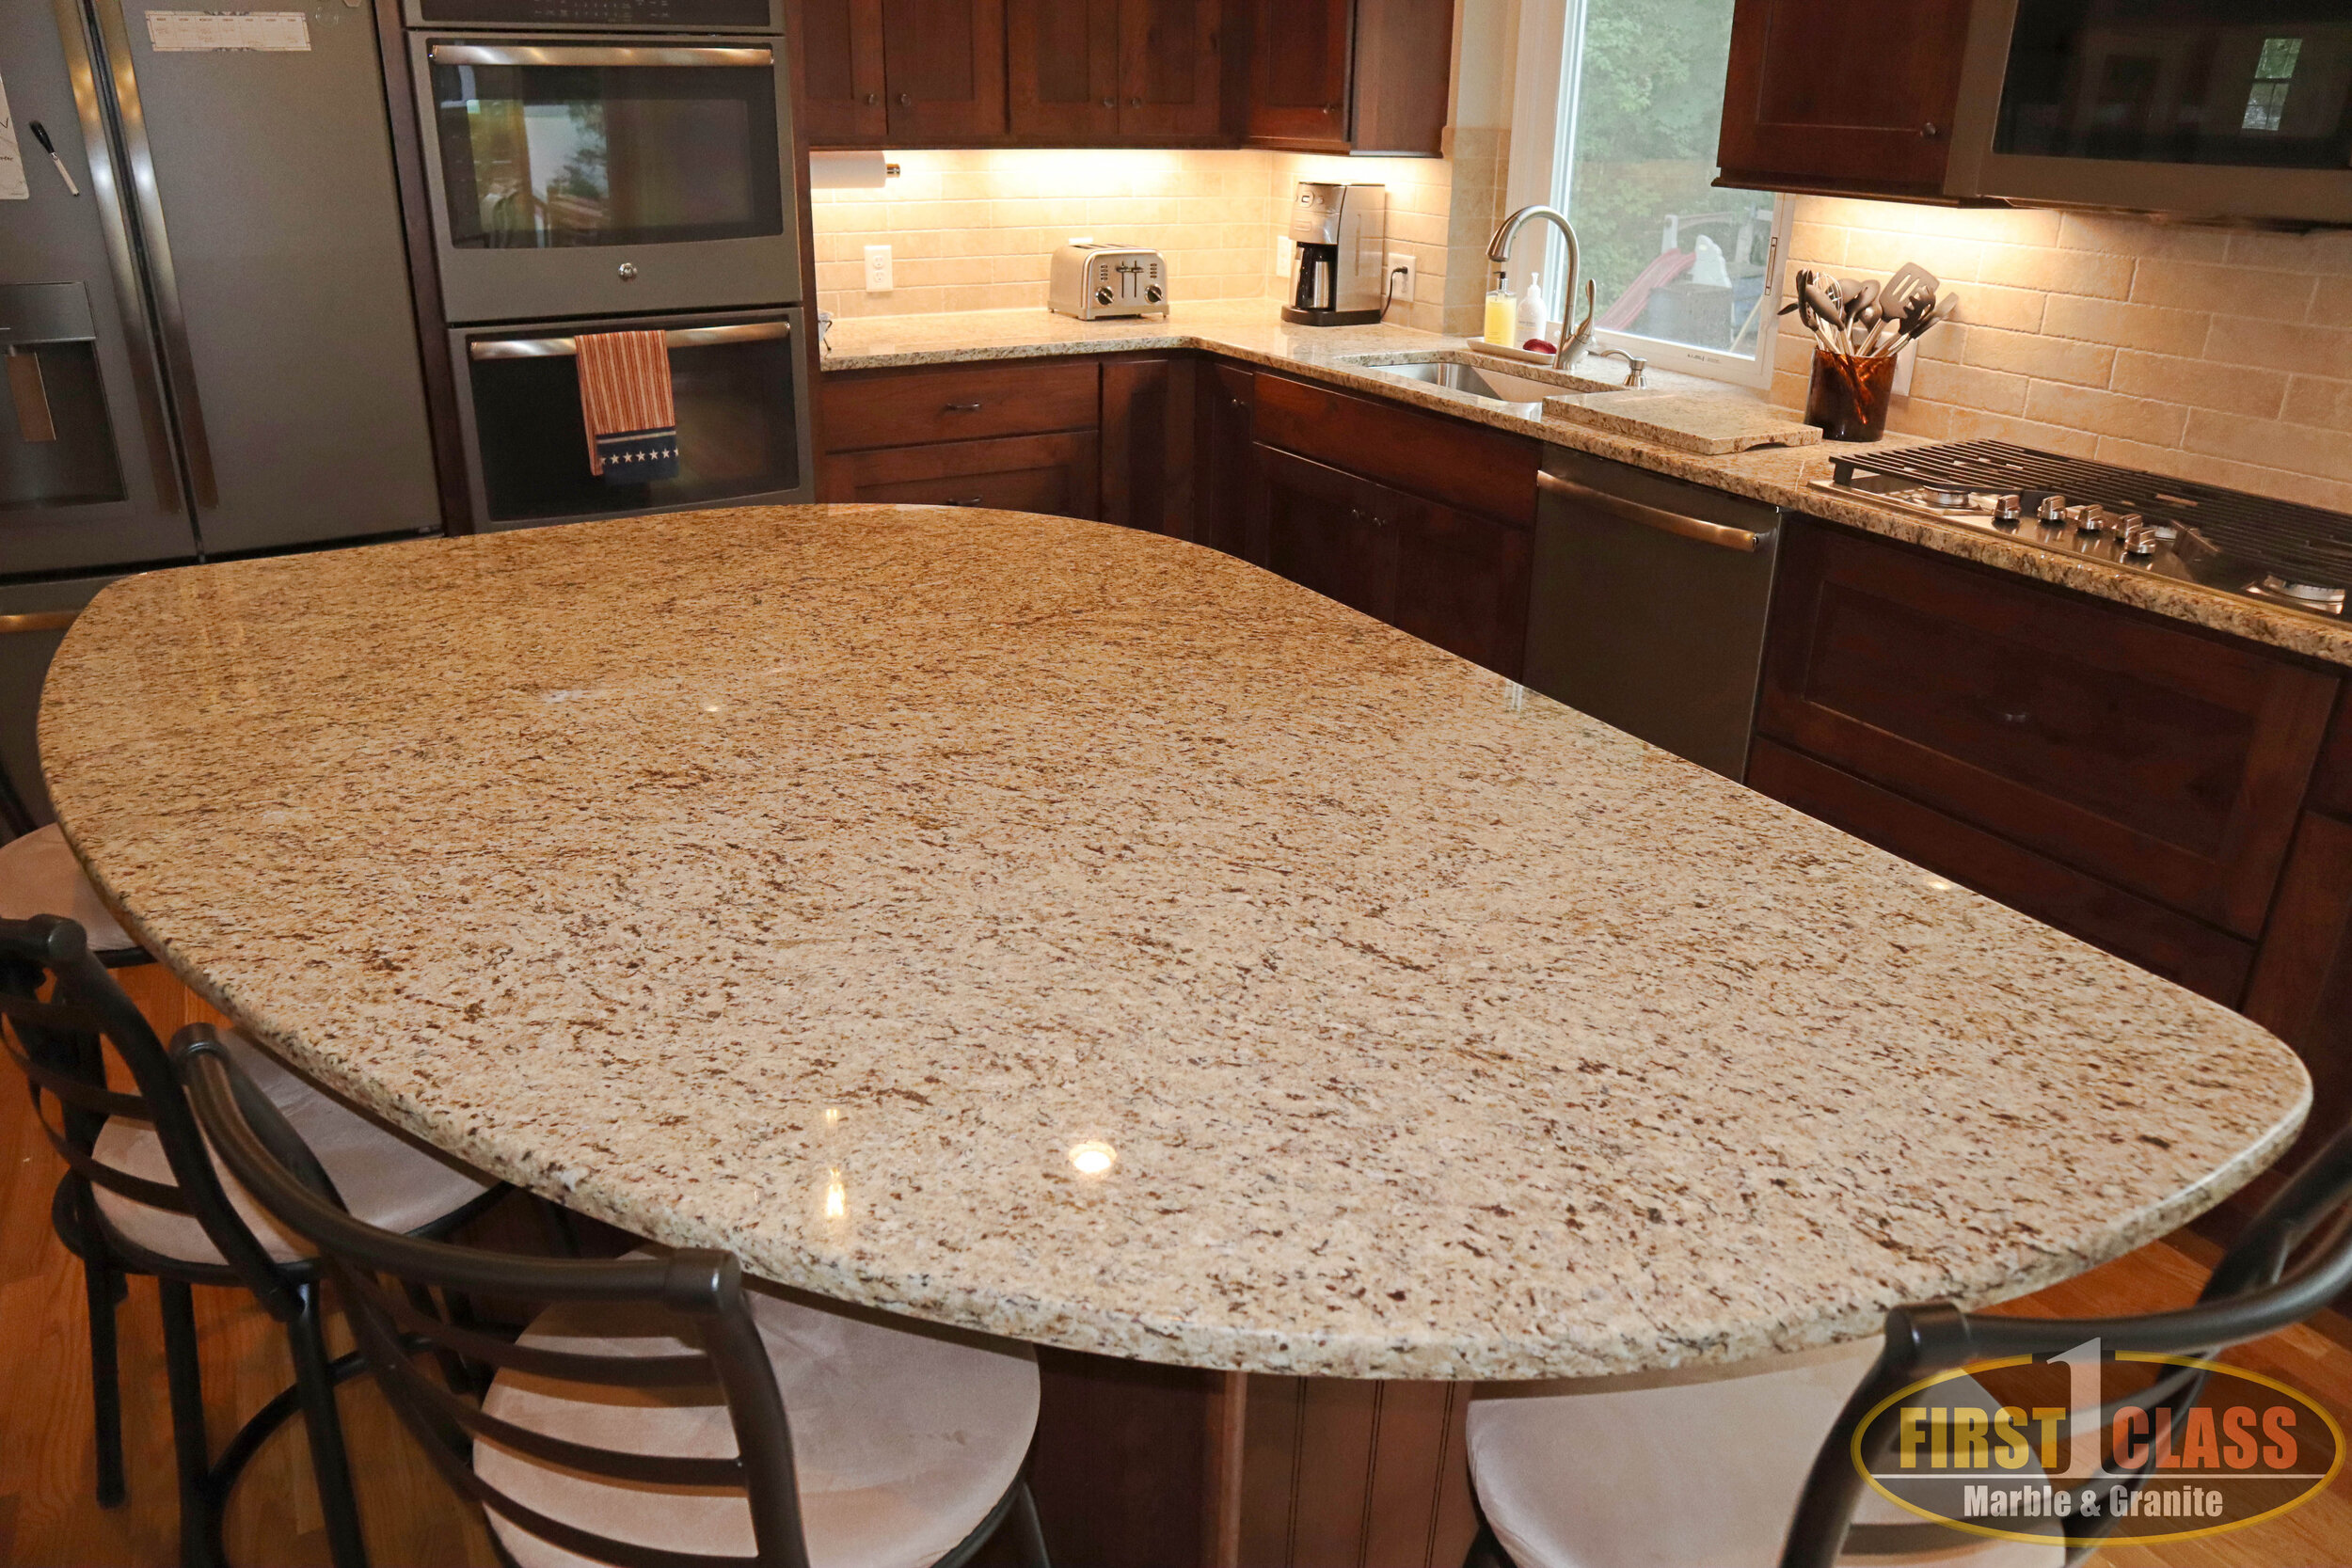 "Material: Giallo Ornamental Guidoni  Thickness, Finish & Stone Type: 3 CM Polished Granite  Edge: 1/4"" Radius  Sink: Client Sink: Under-Mount"